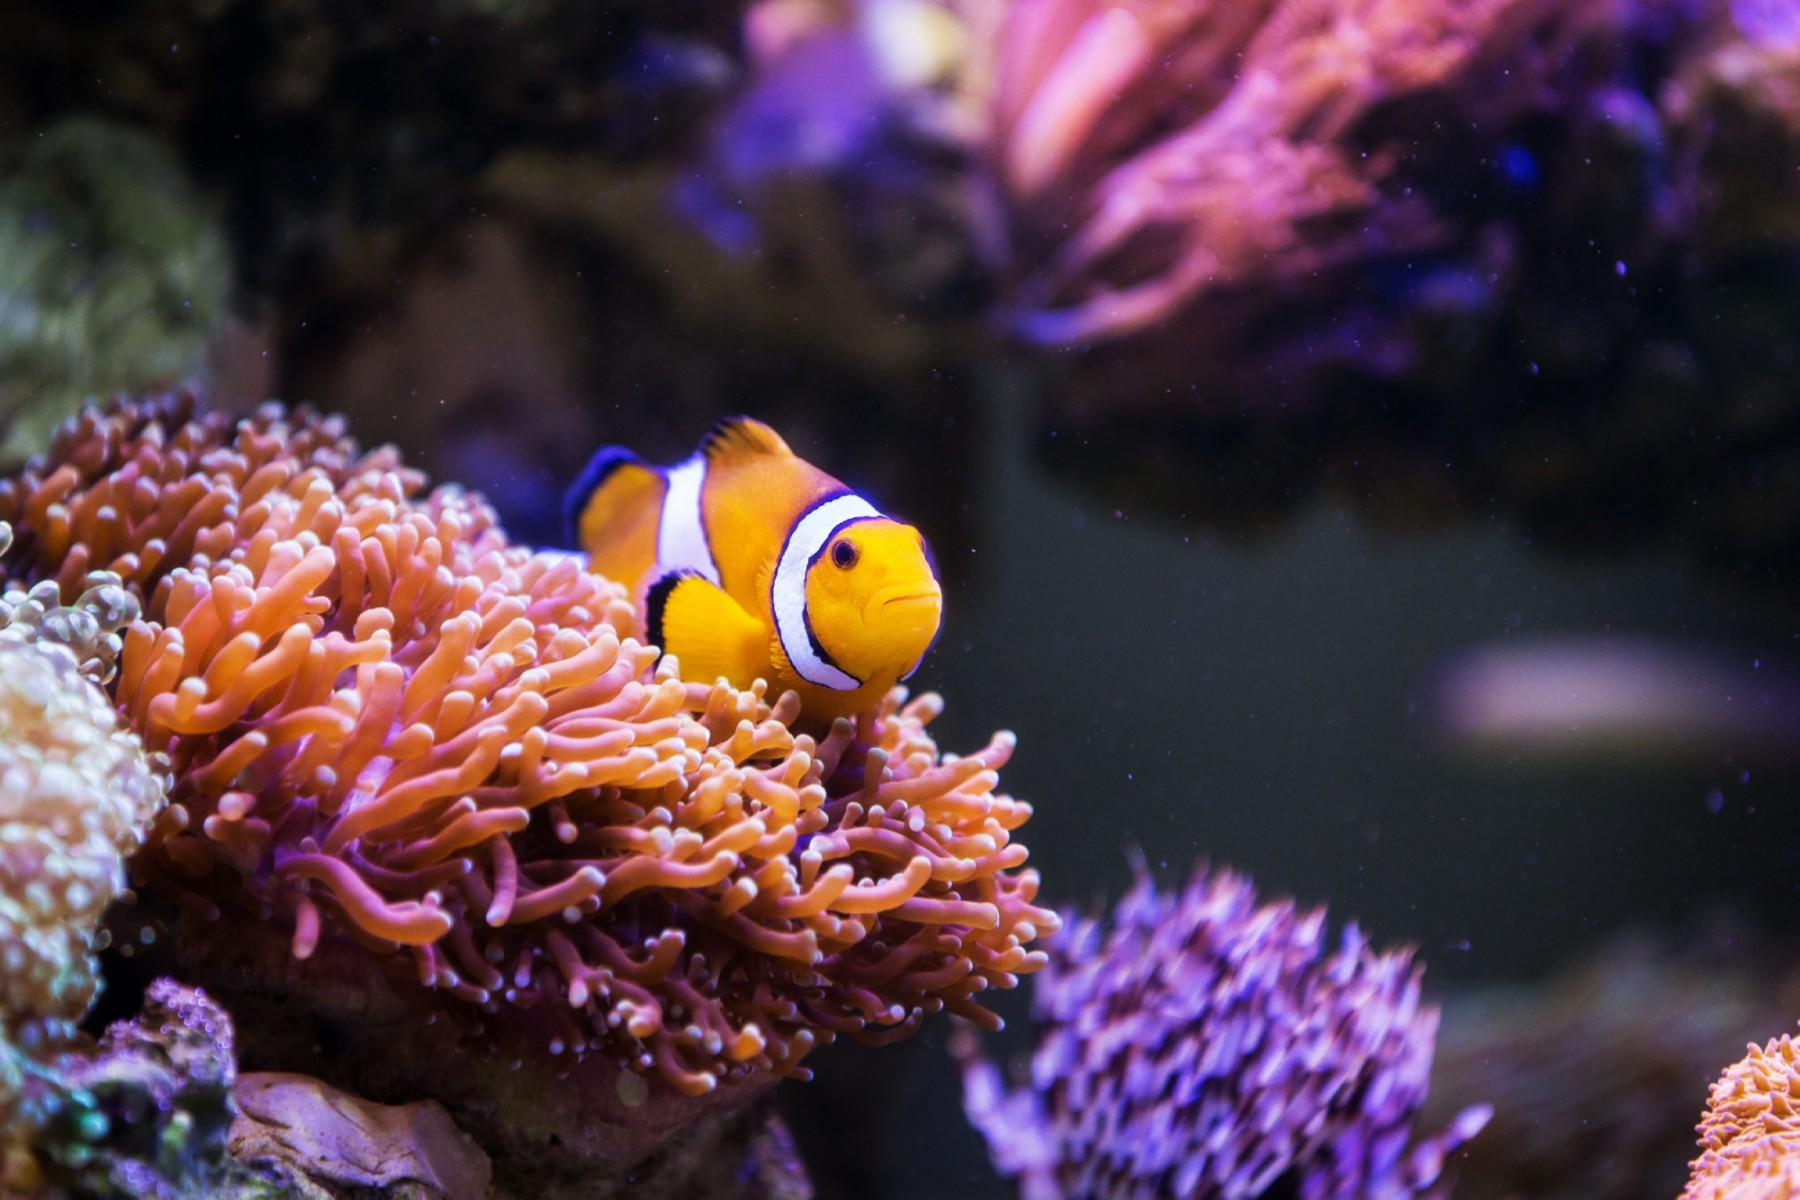 Clownfish close up sitting in orange anemone